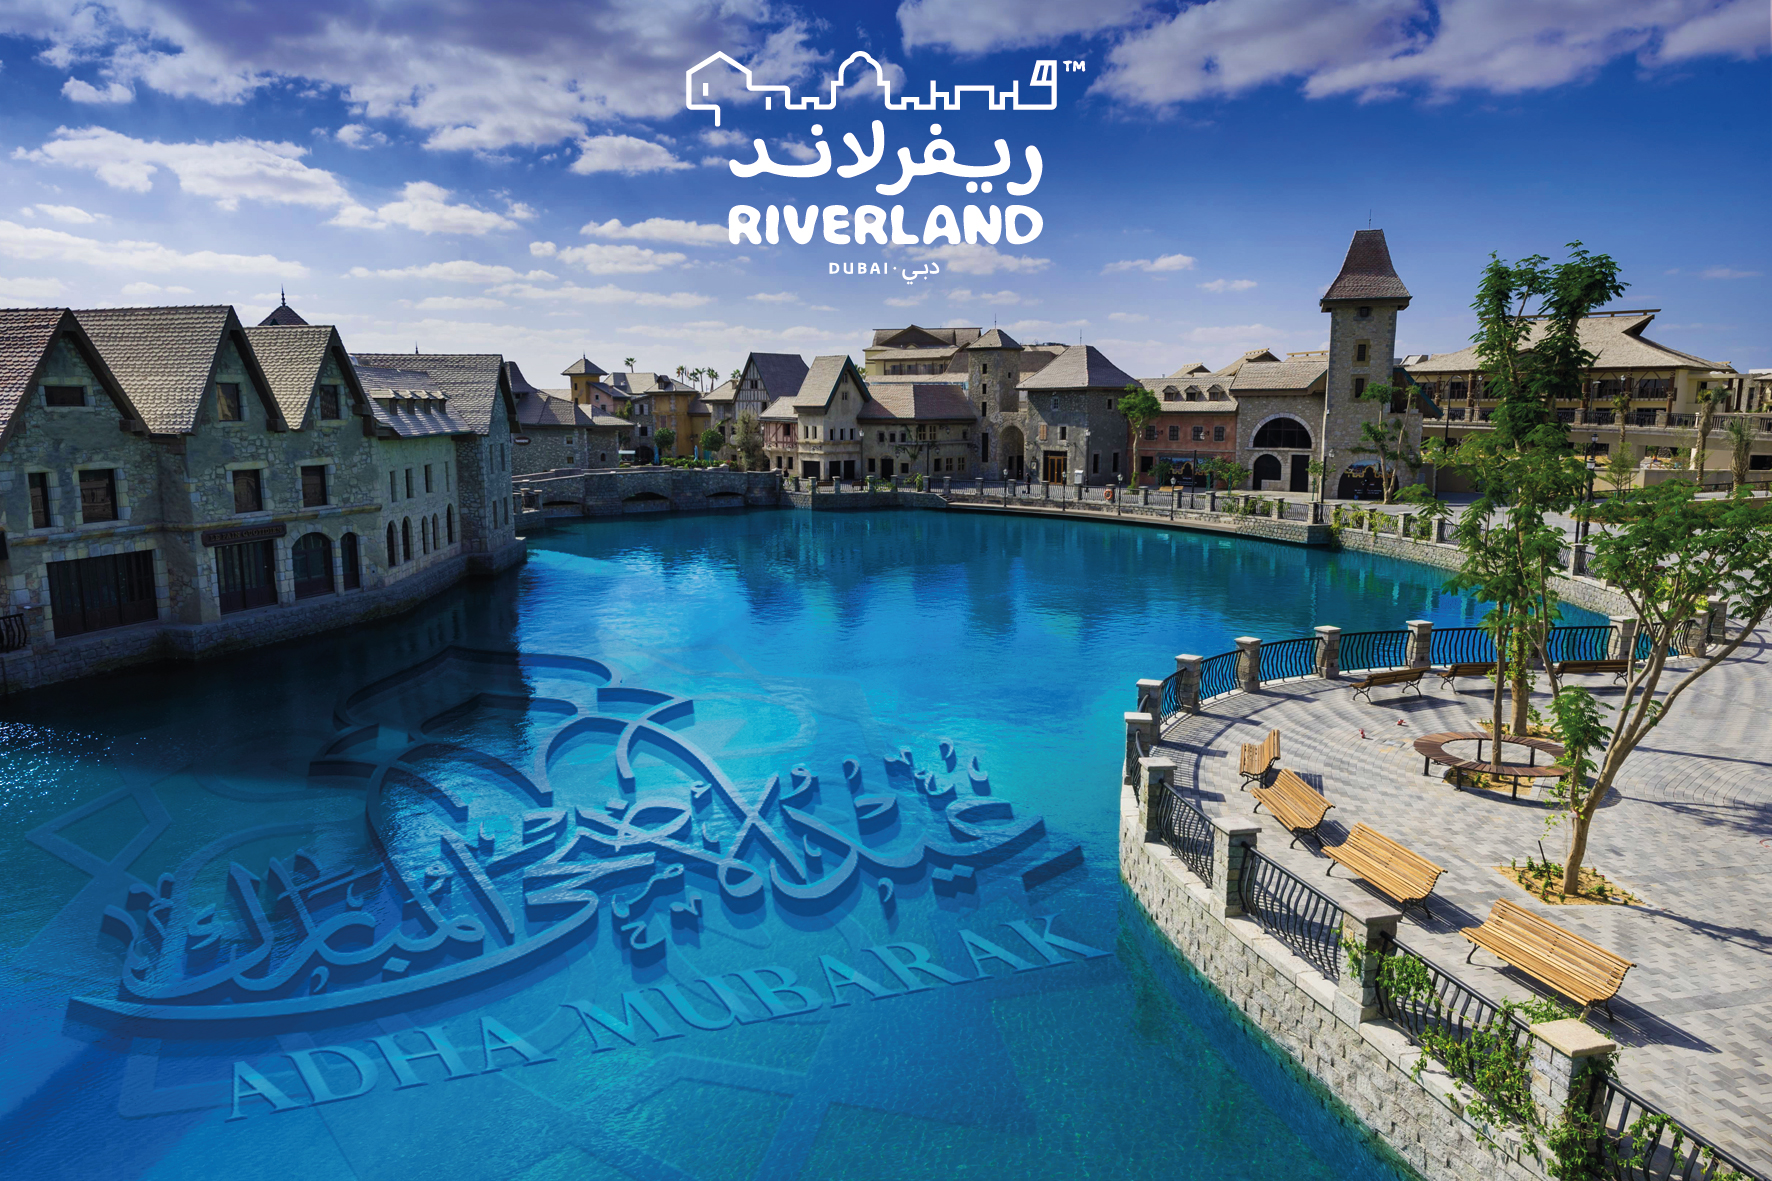 Celebrate EID-AL-ADHA with Riverland™ Dubai at Dubai Parks And Resorts